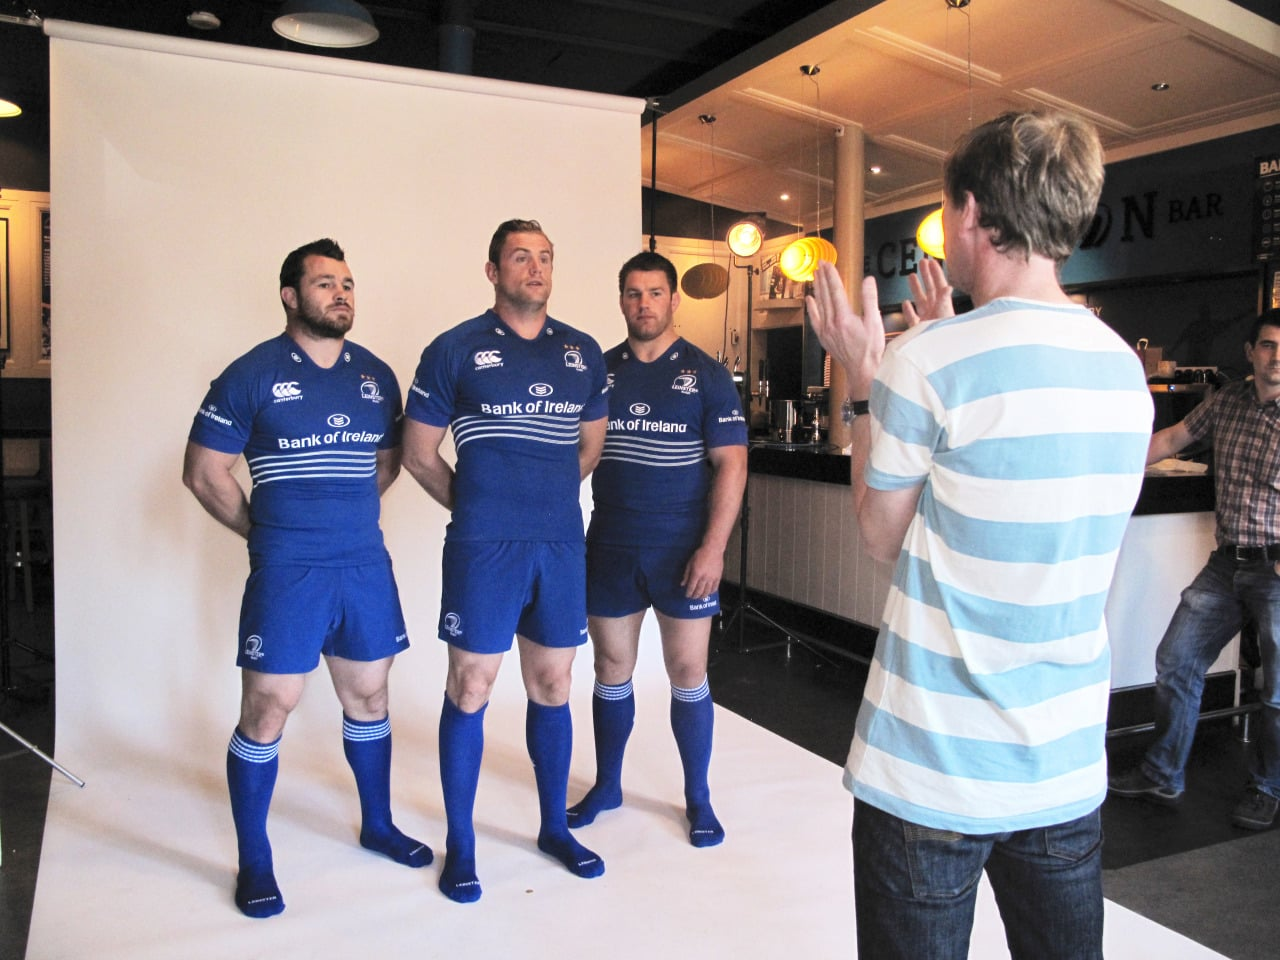 Me directing the Leinster players